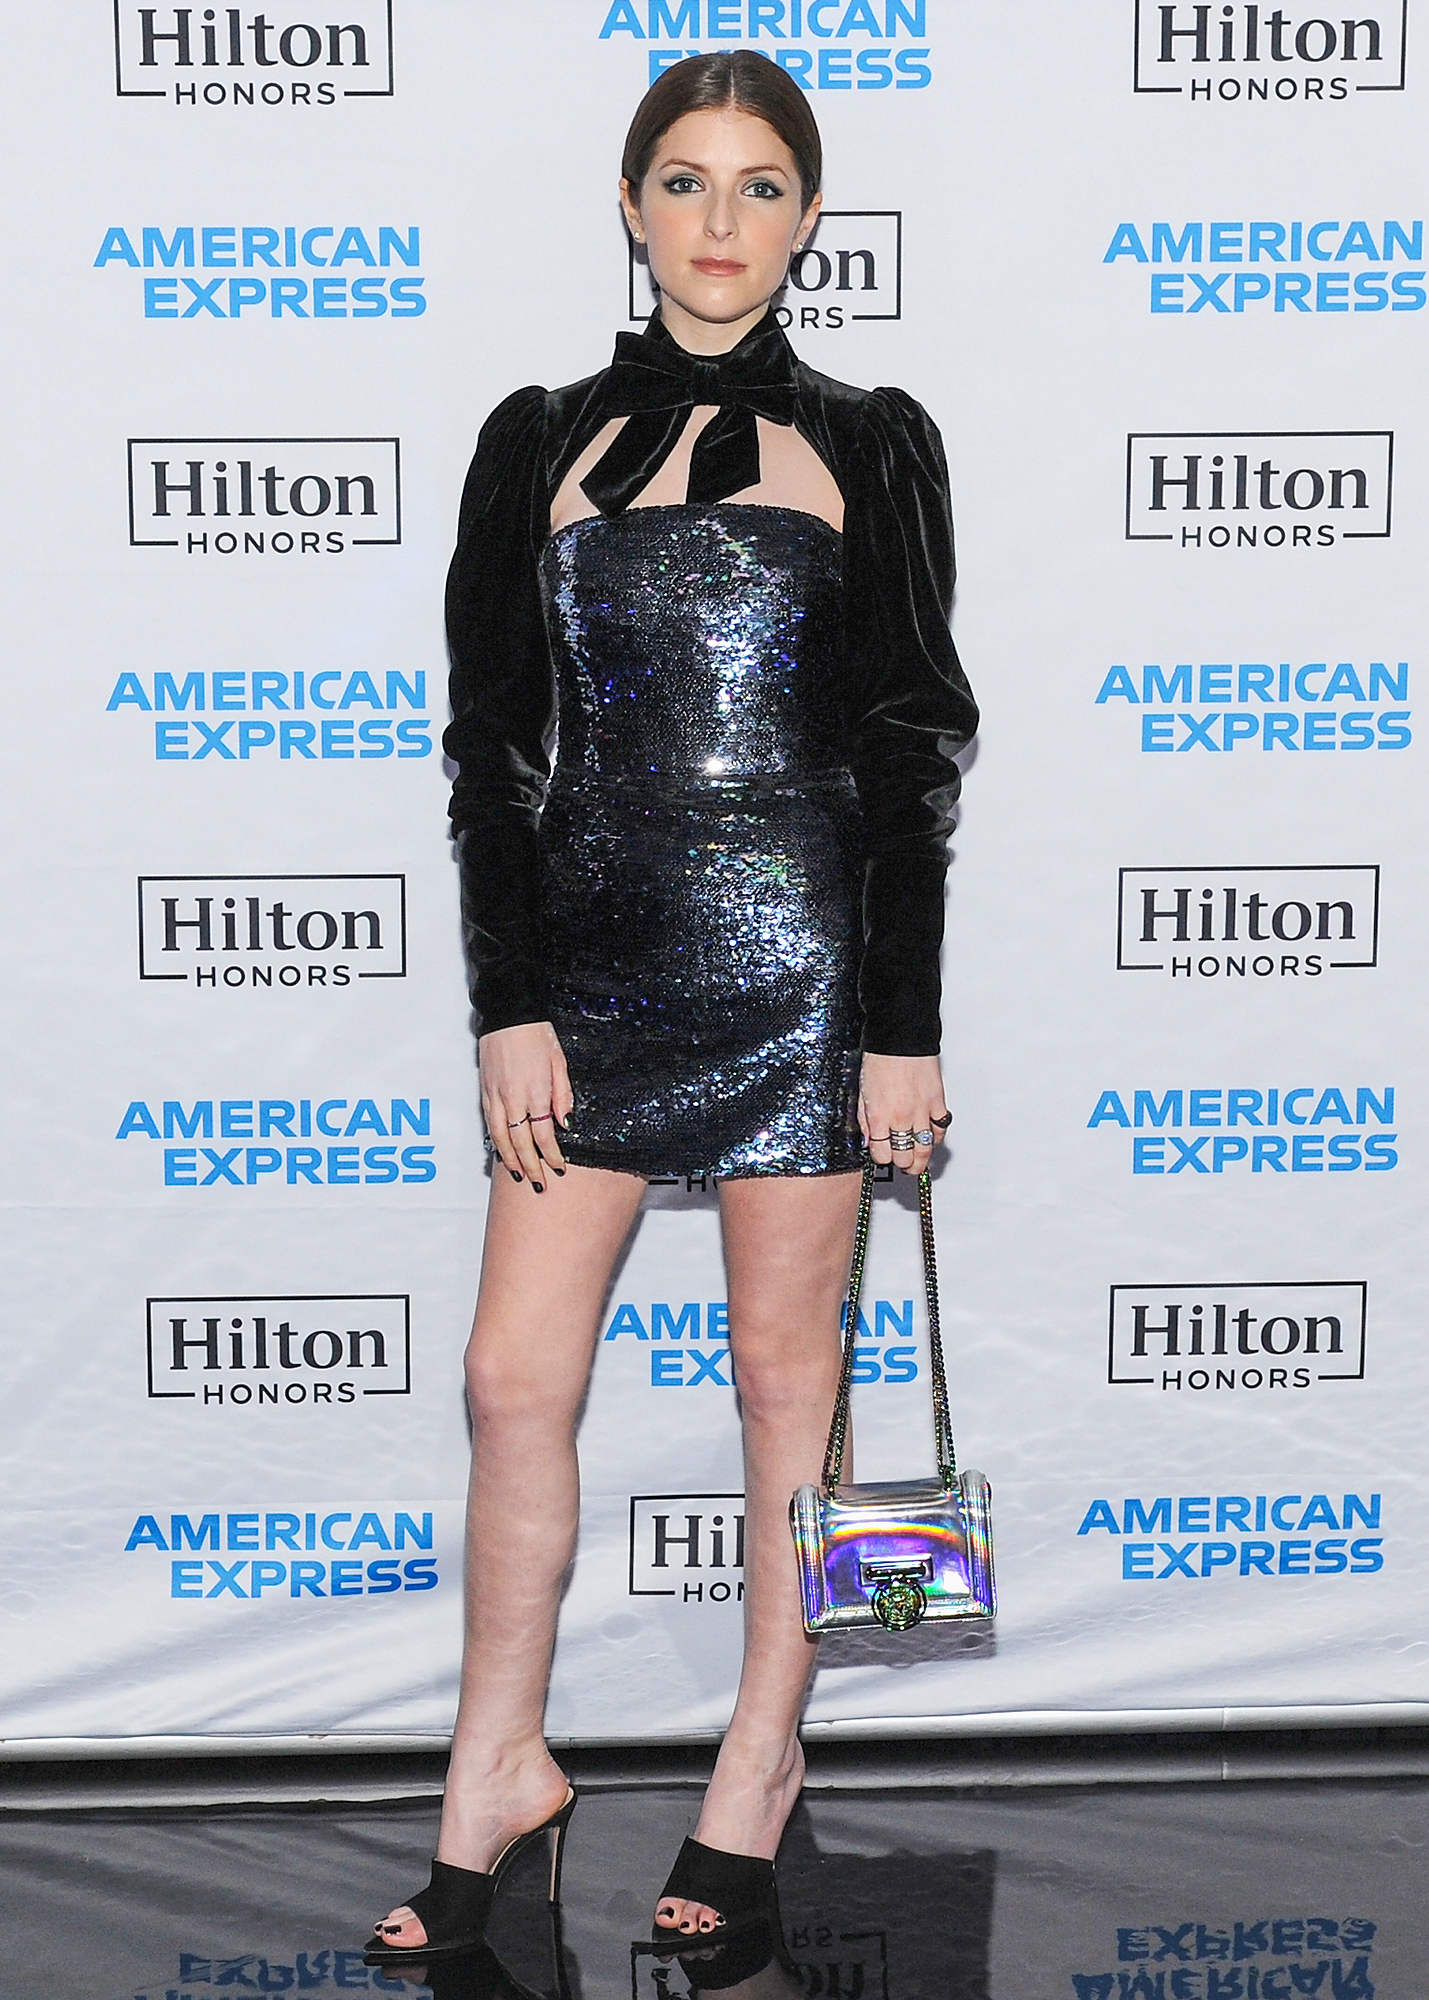 Hilton And American Express Celebrate Launch Of Co-Brand Credit Card Portfolio With The Chainsmokers & Charlie Puth